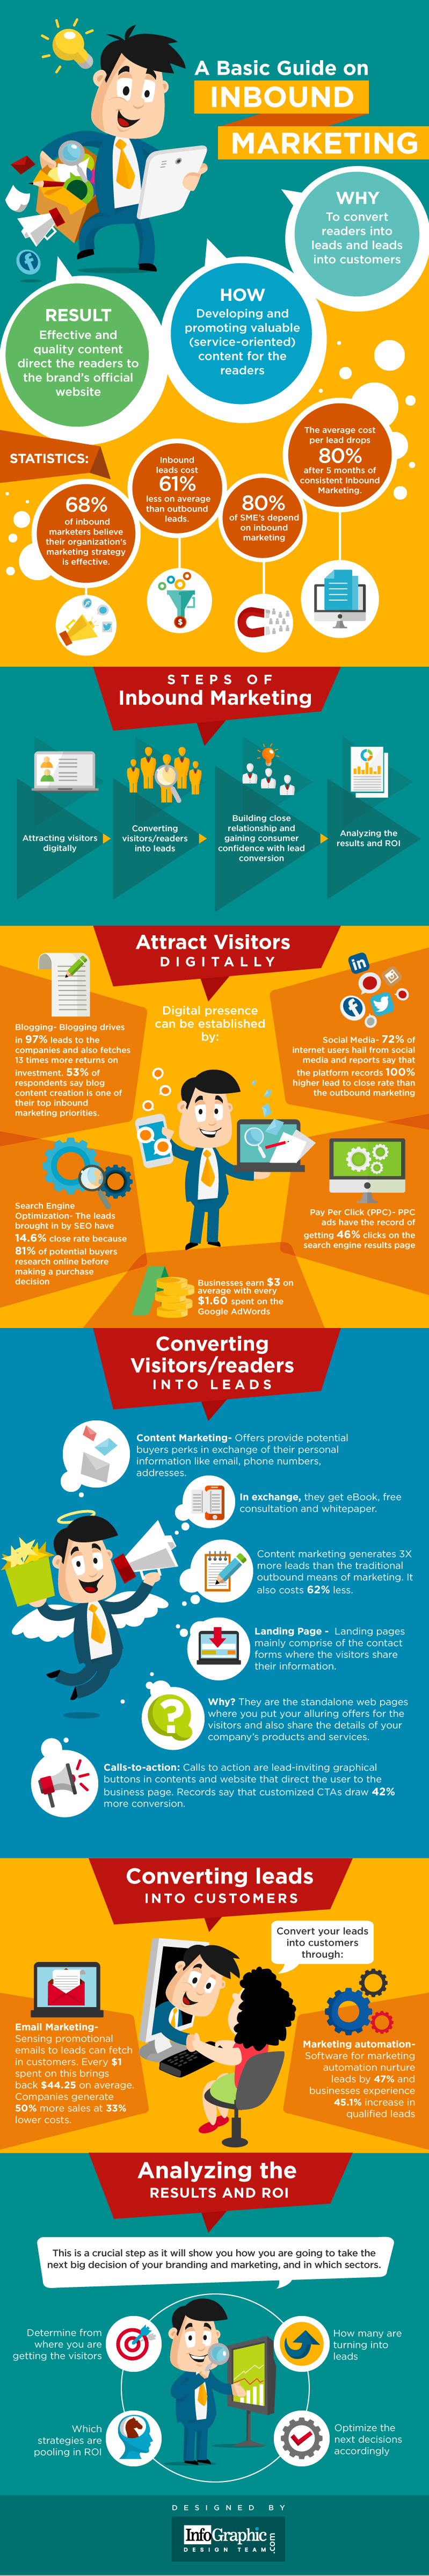 How Inbound Marketing Can Help You Convert Leads? - Infographic